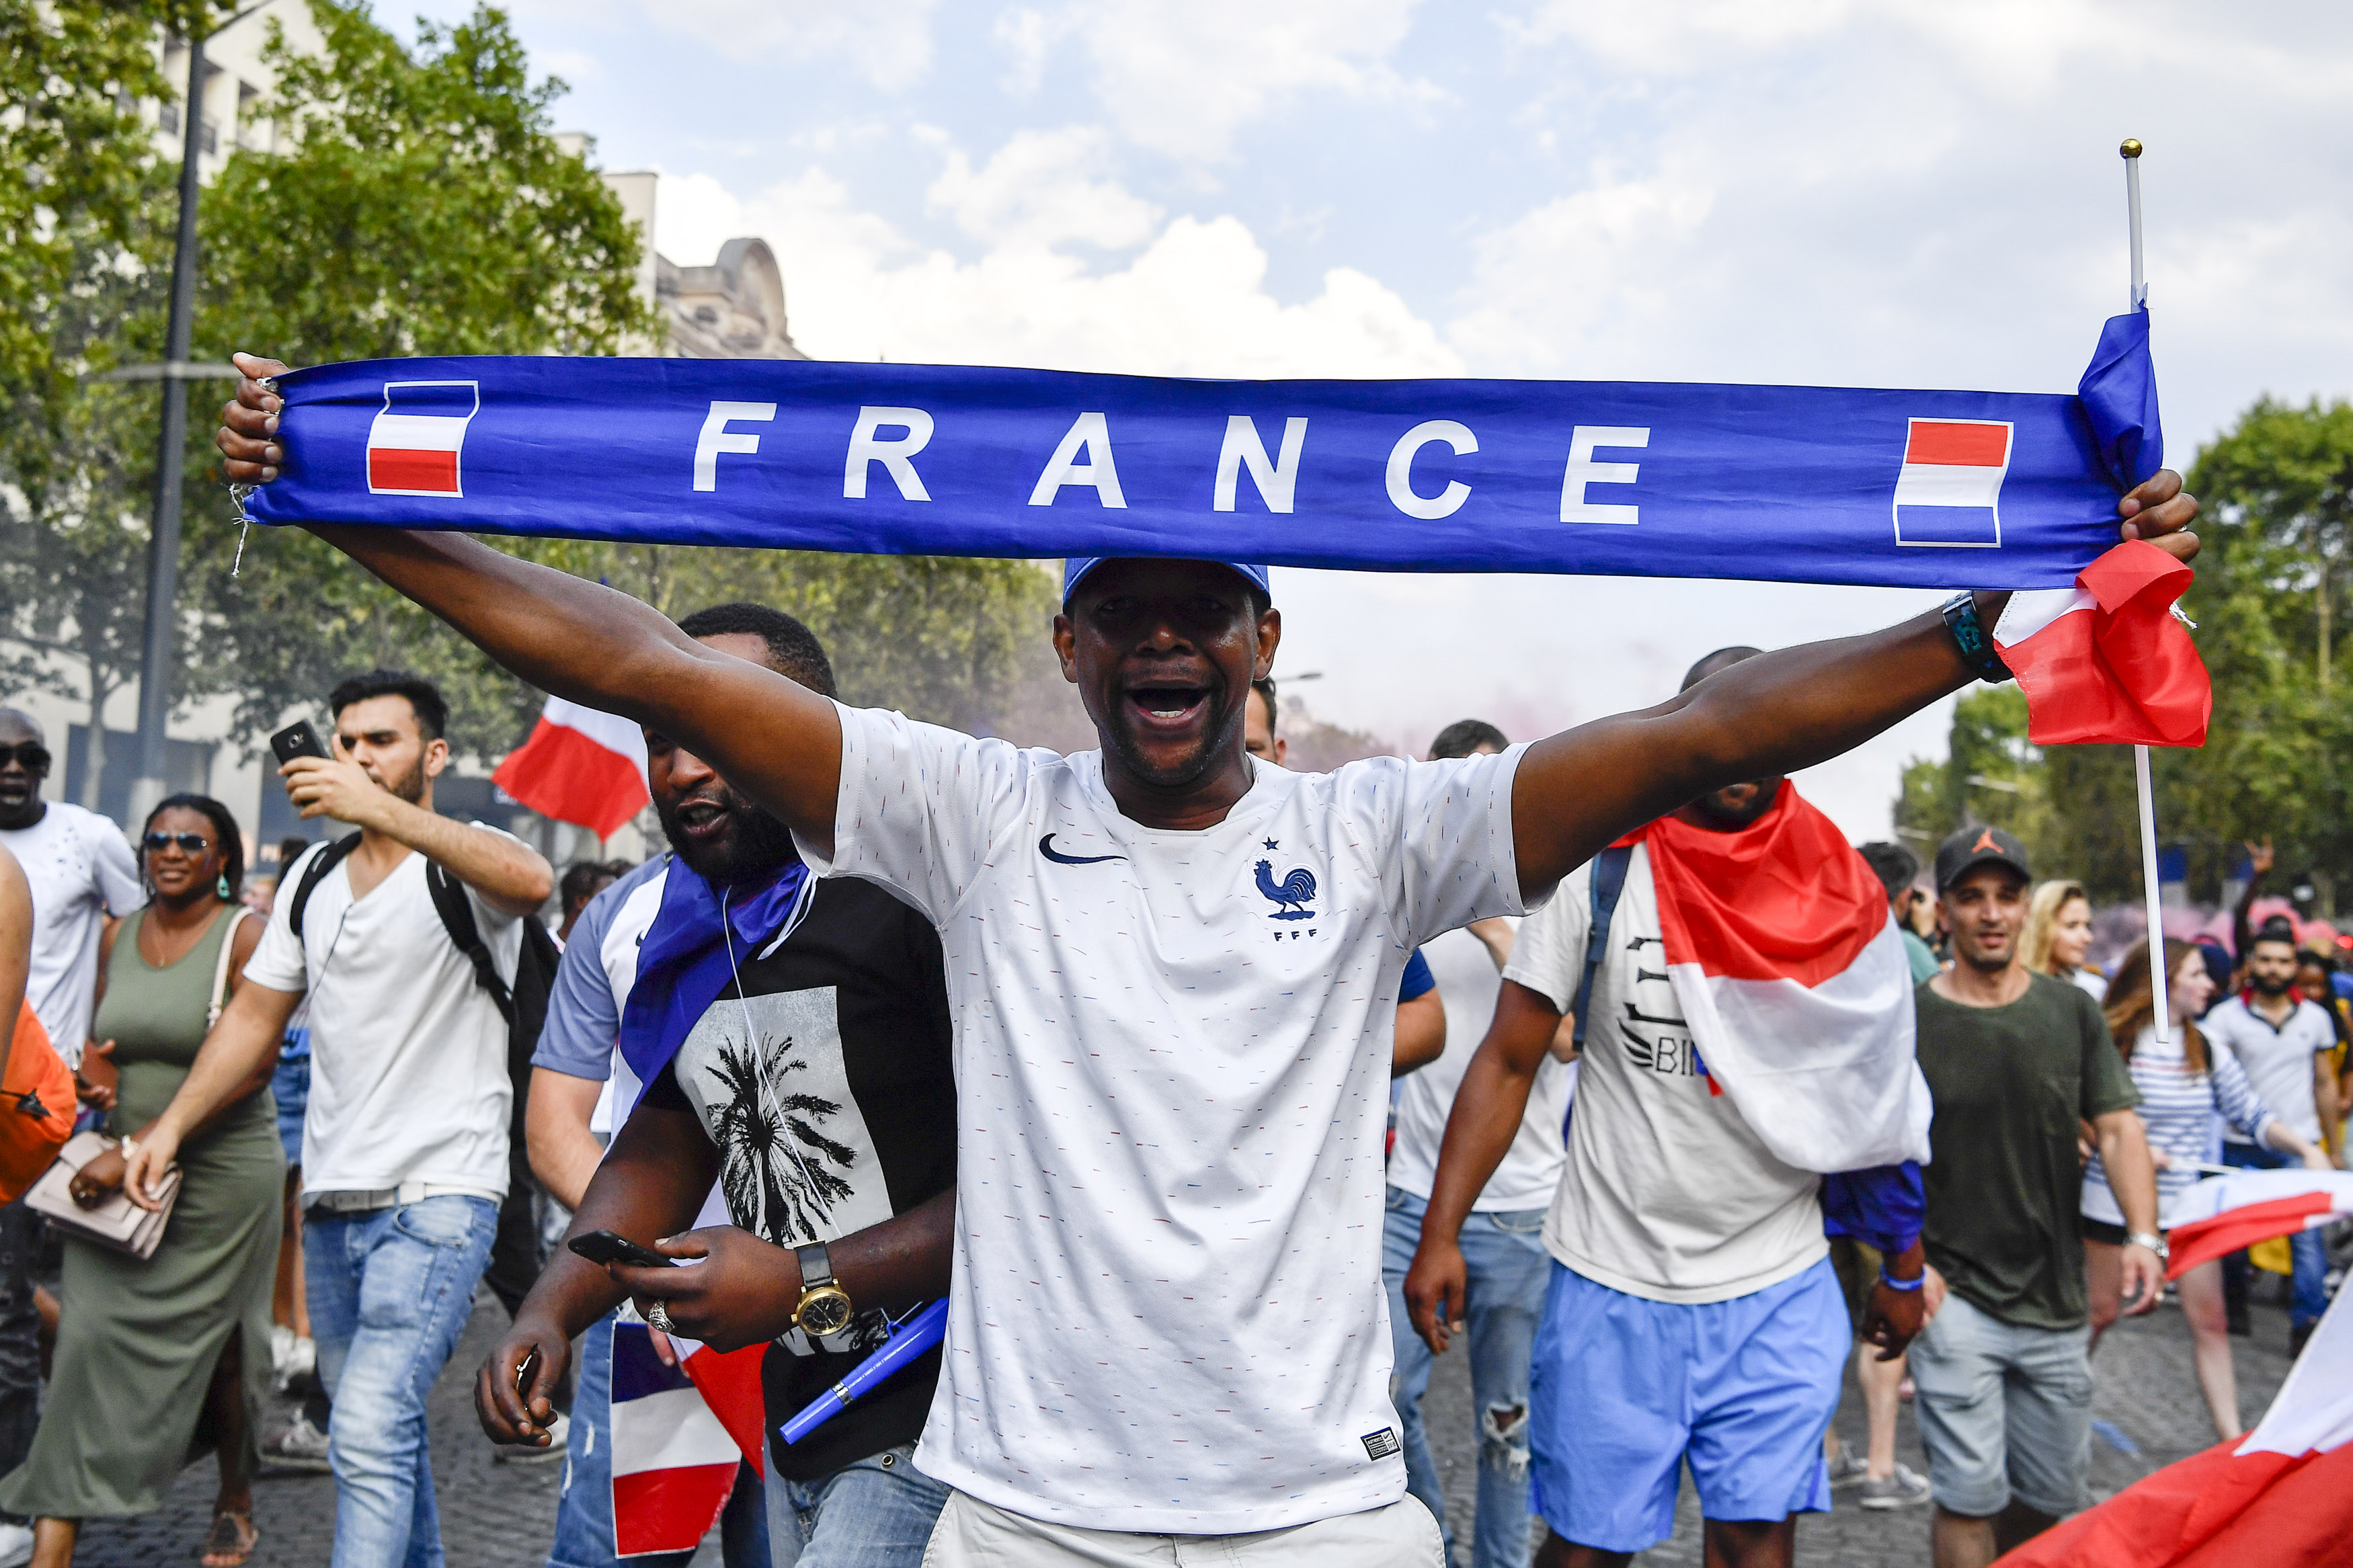 French football fan at Champs-Élysées in Paris